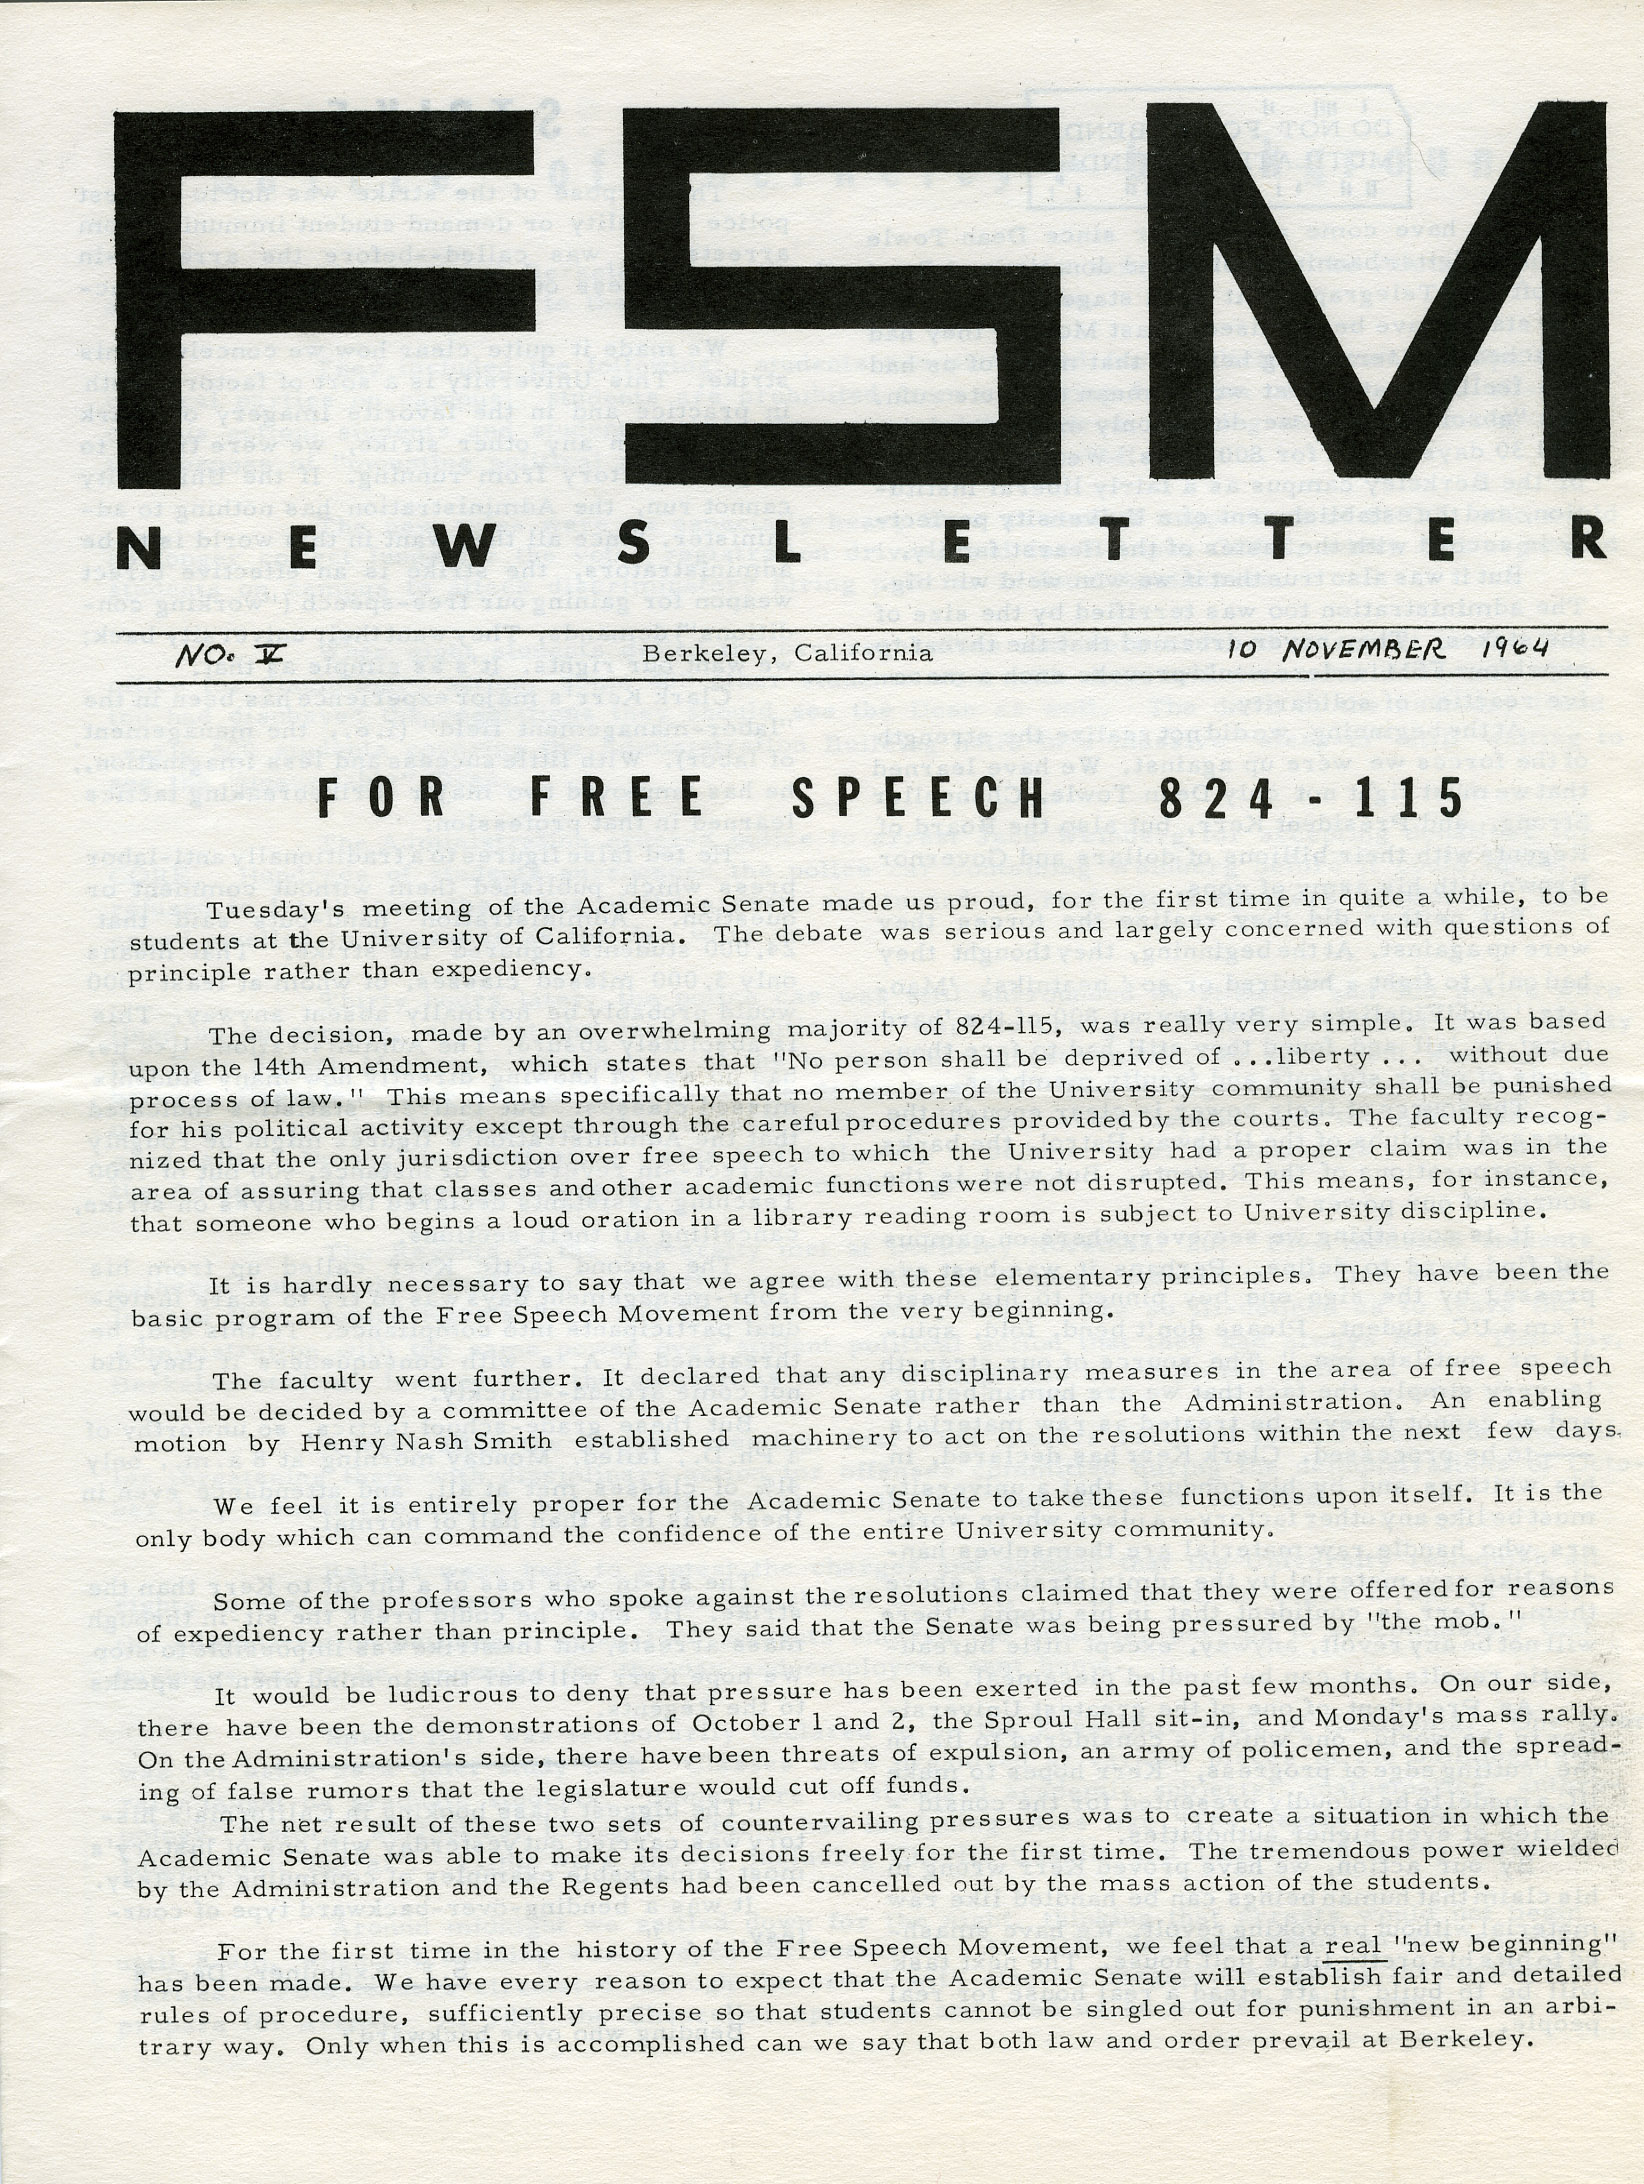 Depiction of Free Speech Movement newsletter